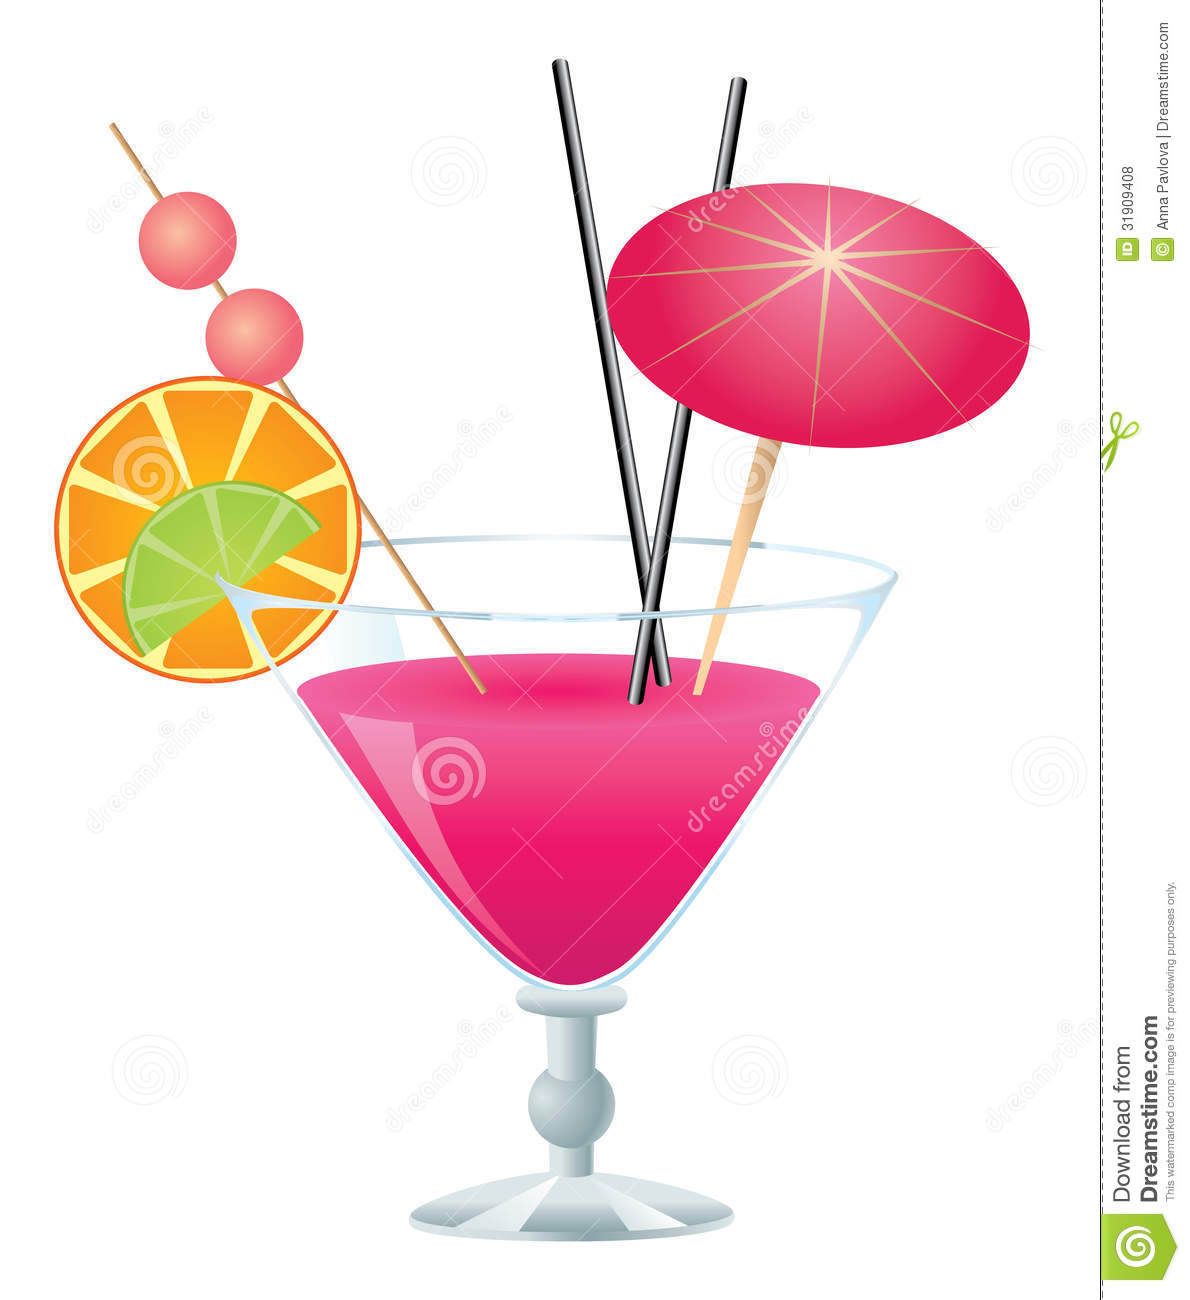 Cocktails Clip Art Free | Clipart Panda - Free Clipart Images